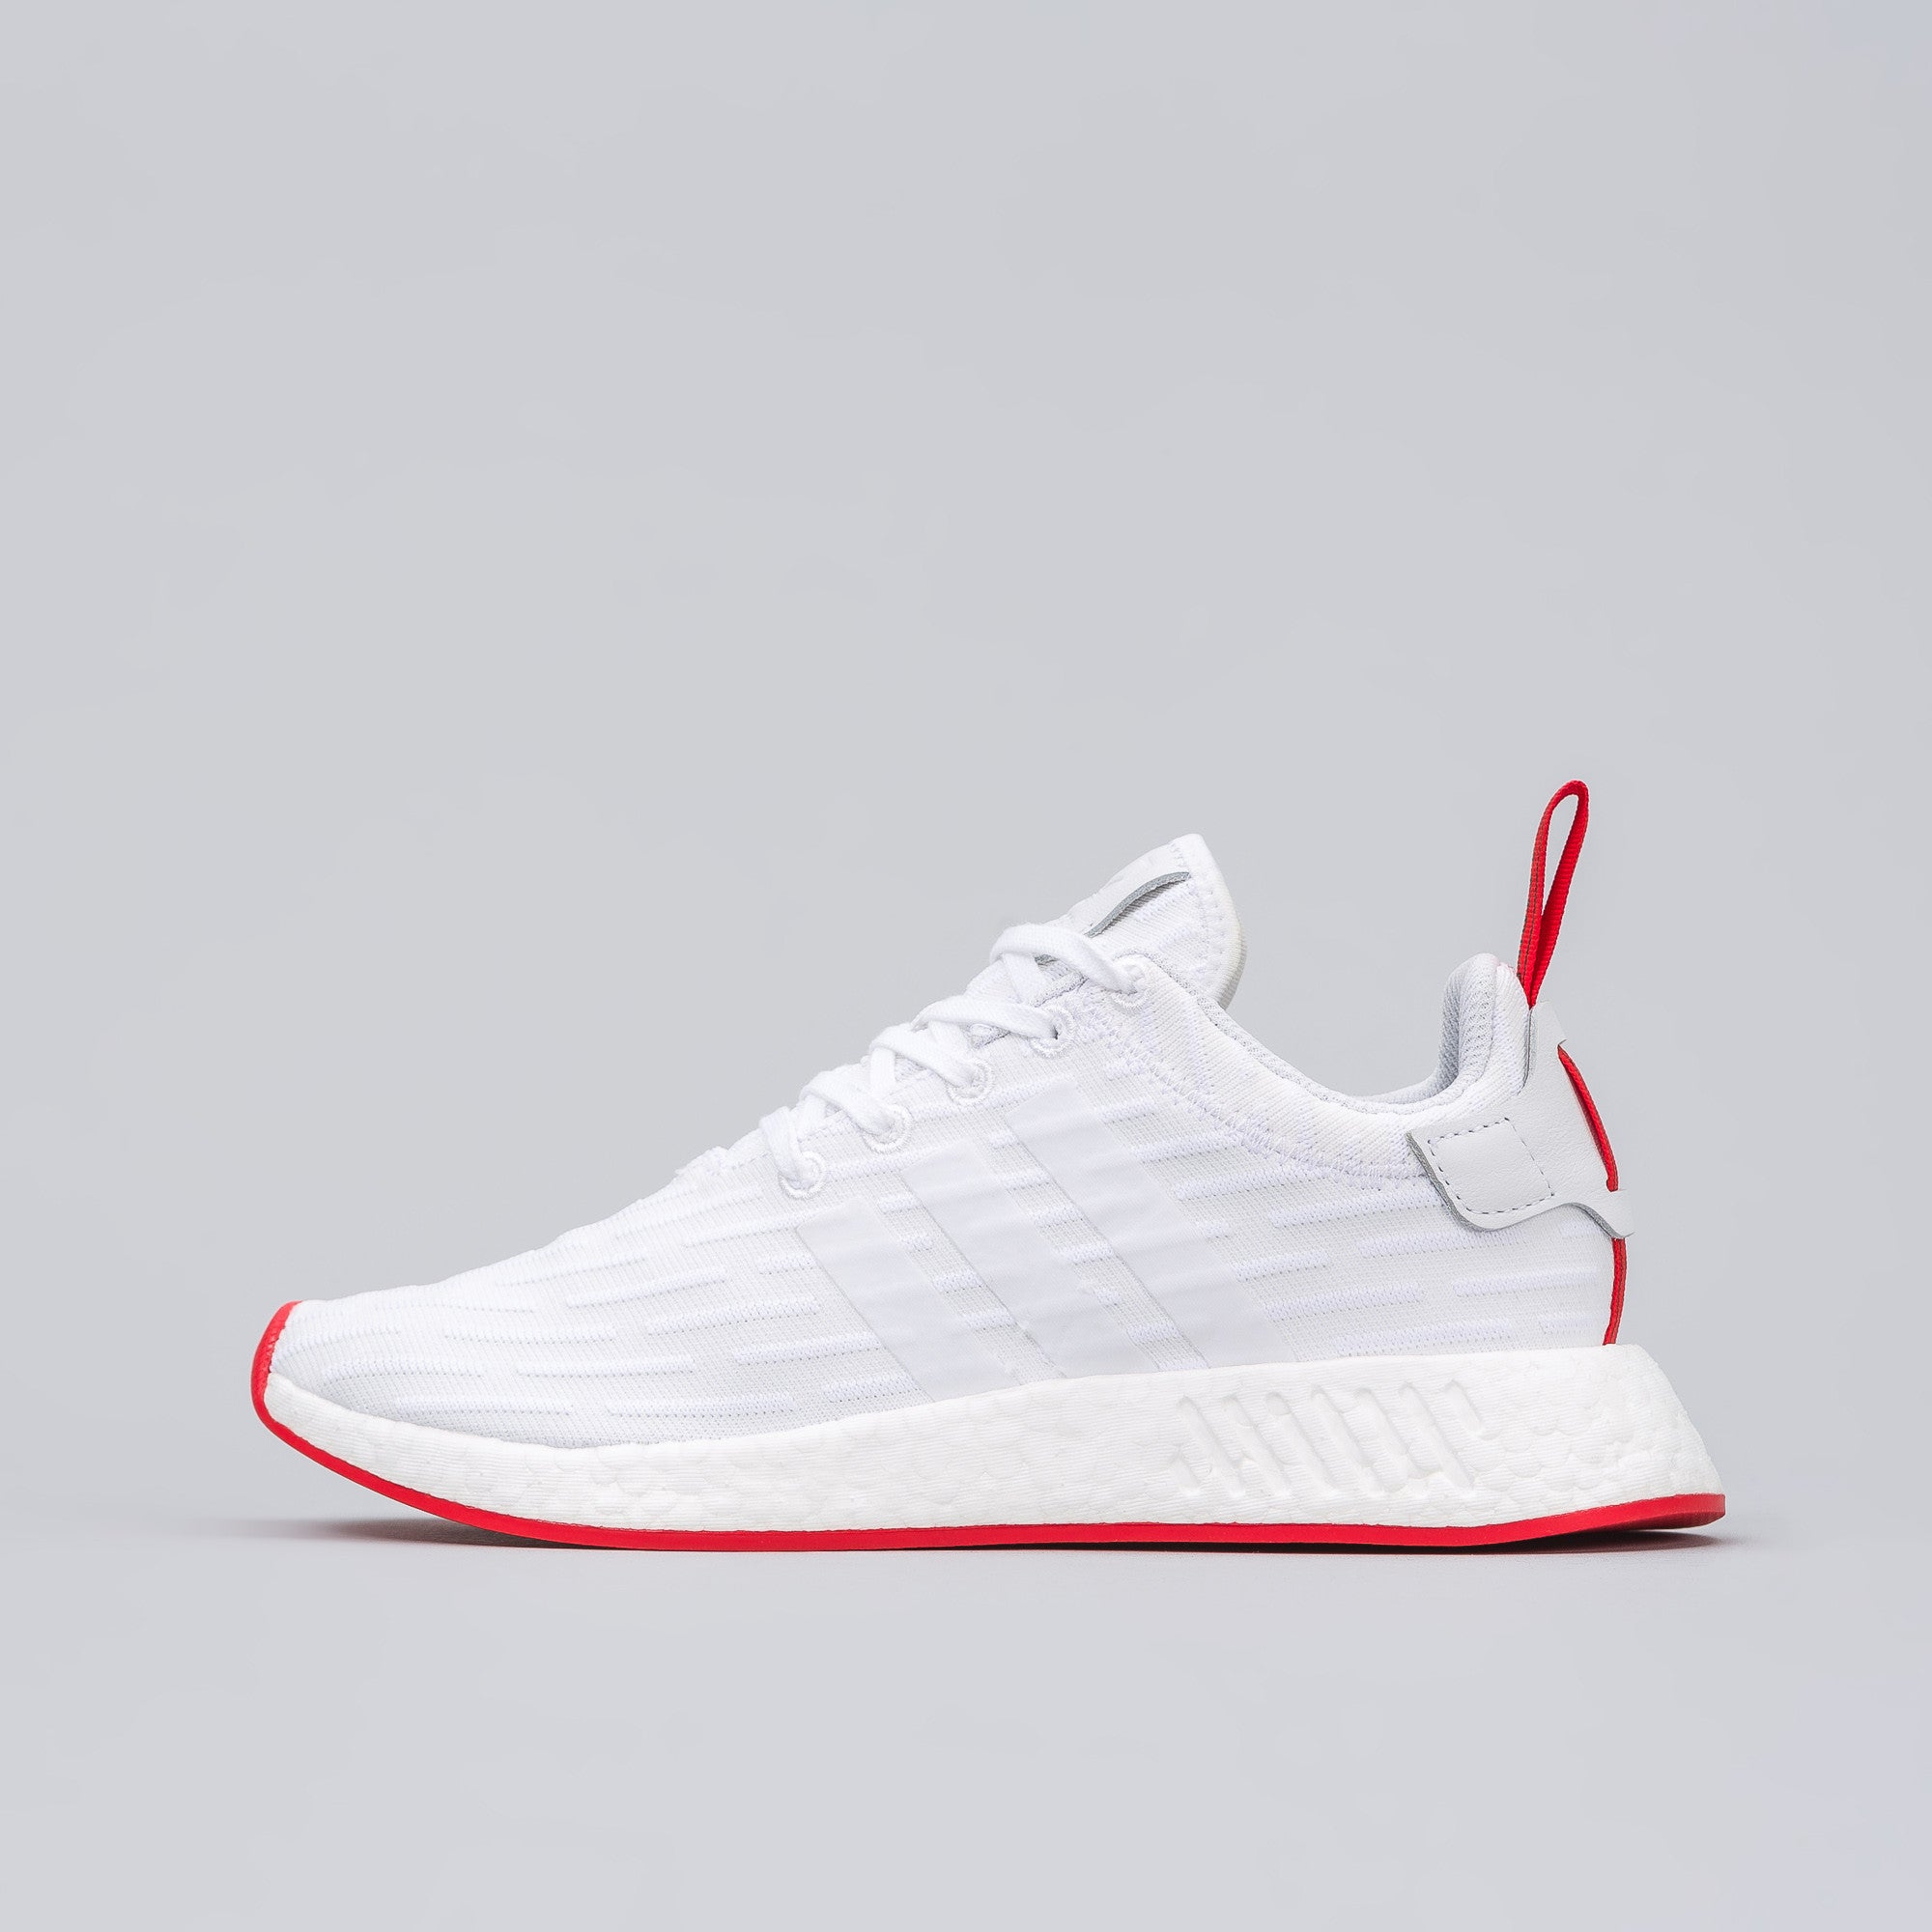 Get the Deal: Adidas Originals NMD XR1 Winter Sneakers In Red